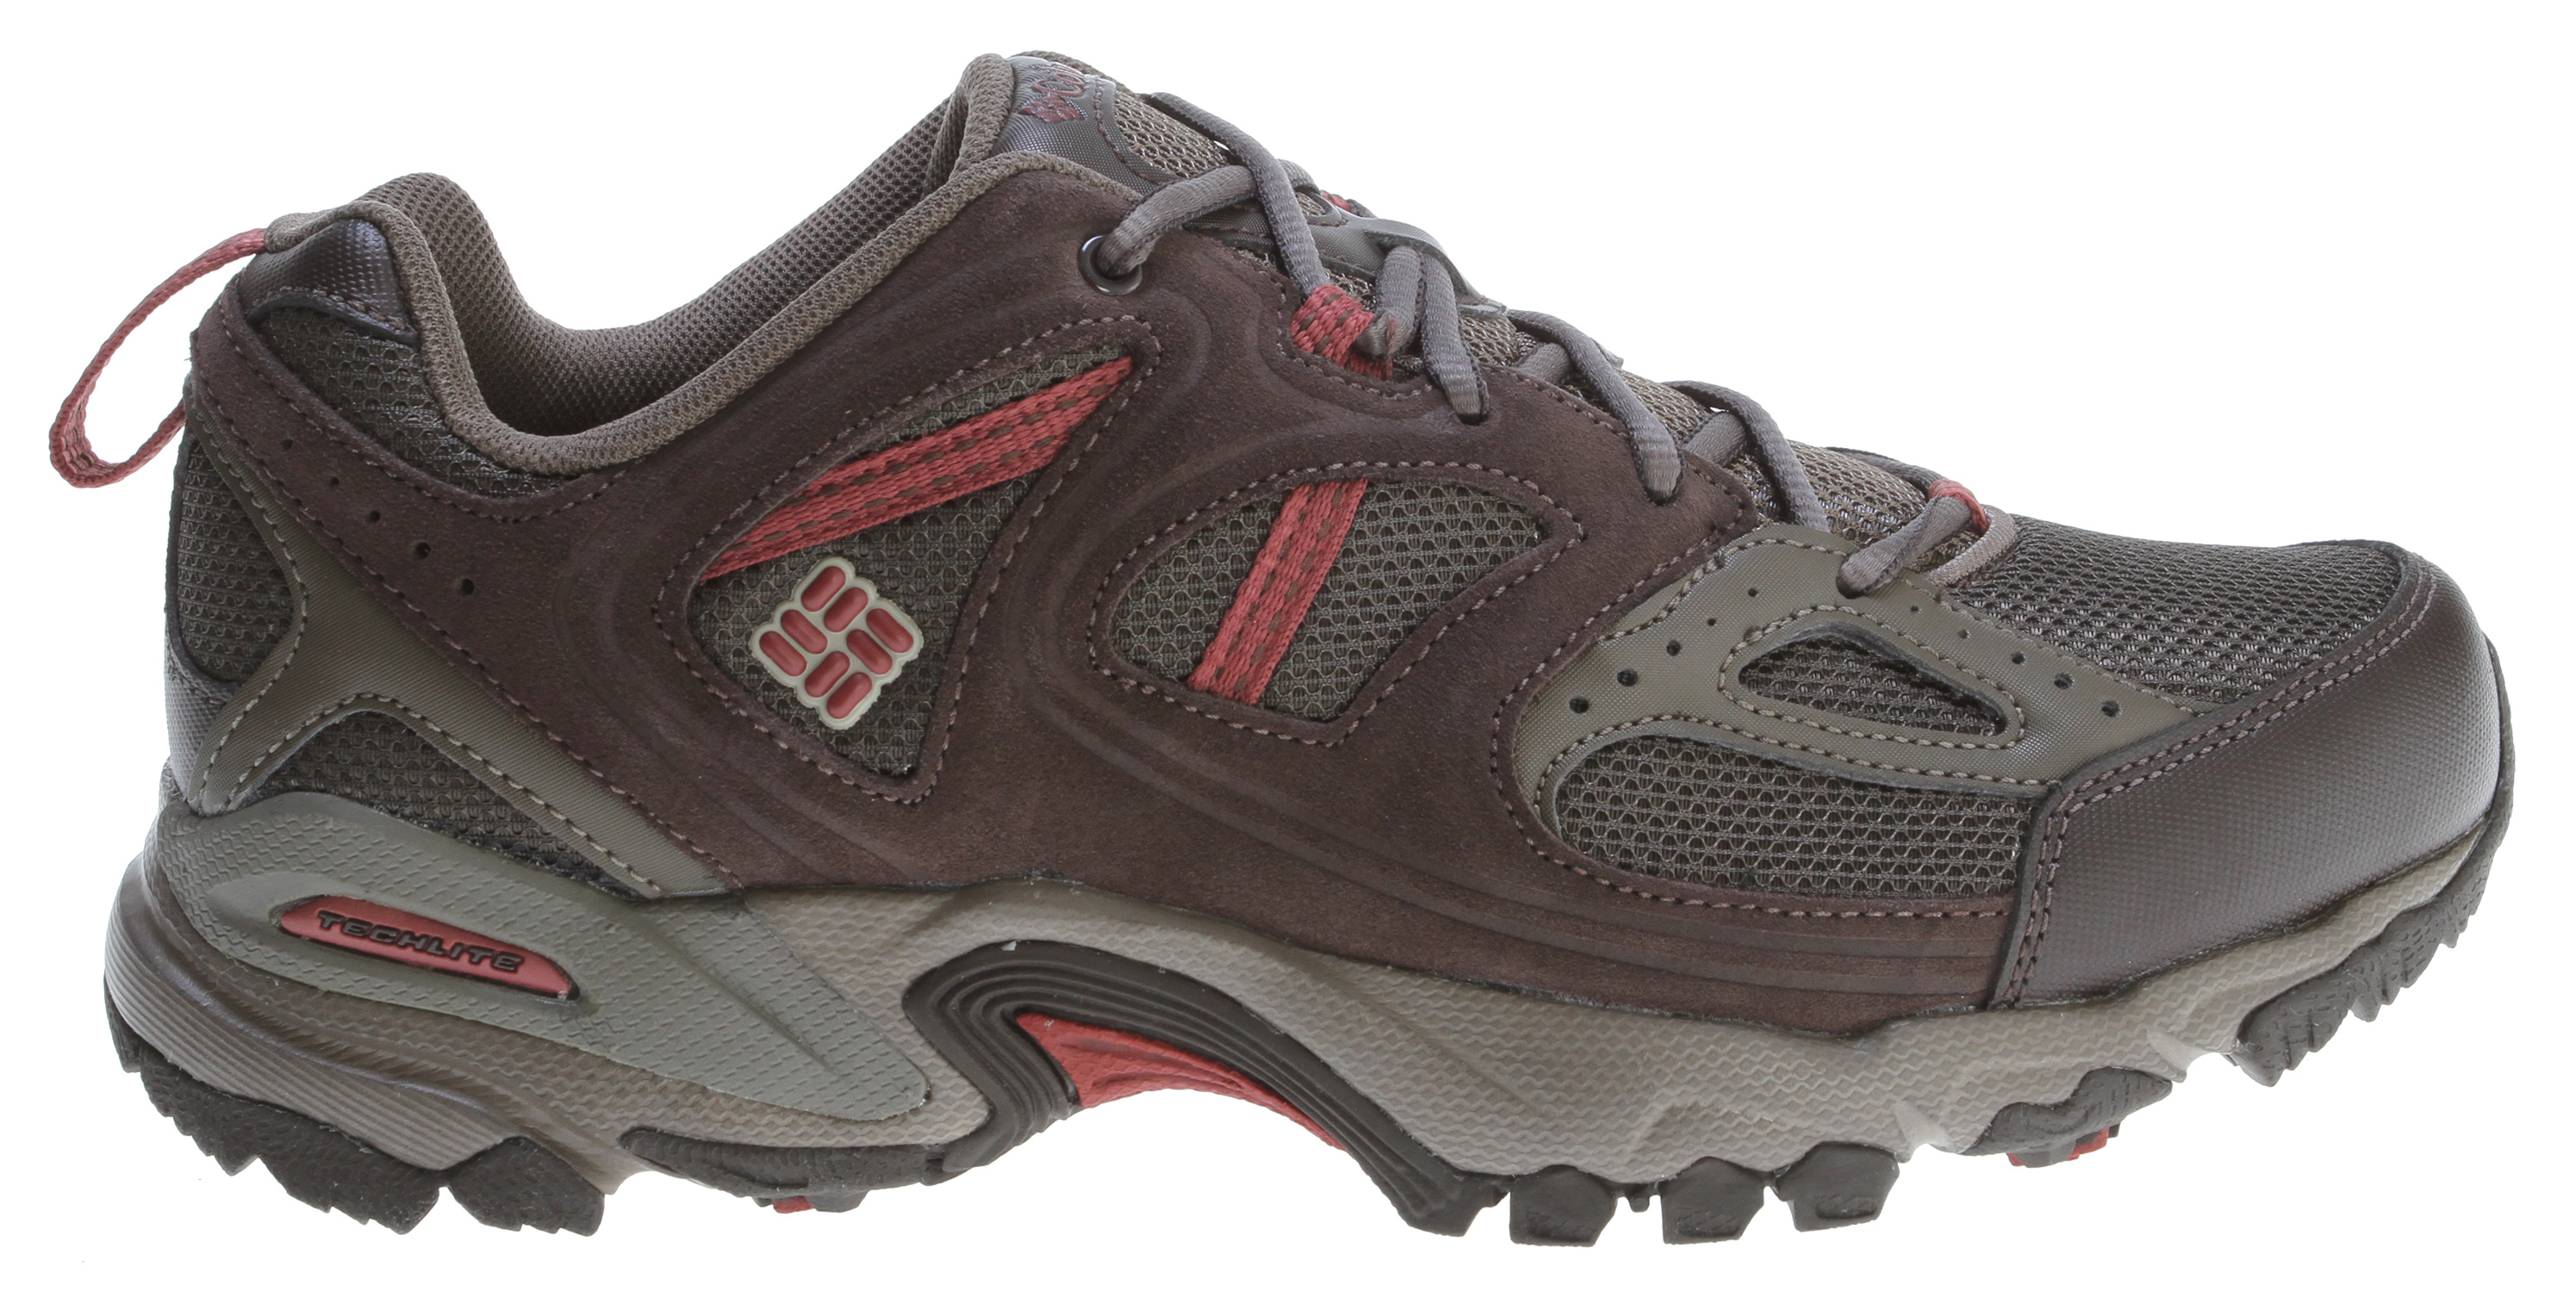 Camp and Hike A lightweight multi-functional shoe geared toward fast hiking and light running.Key Features of the Columbia Wallawalla 2 Low Hiking Shoes: UPPER: Combination suede leather, breathable mesh, and webbing working together to create a great lock-down on the footbed. MIDSOLE: Multi-density Techlite under foot for exceptional cushioning and support. OUTSOLE: Omni-Grip non-marking outsole designed for a variety of trail surfaces. - $48.95